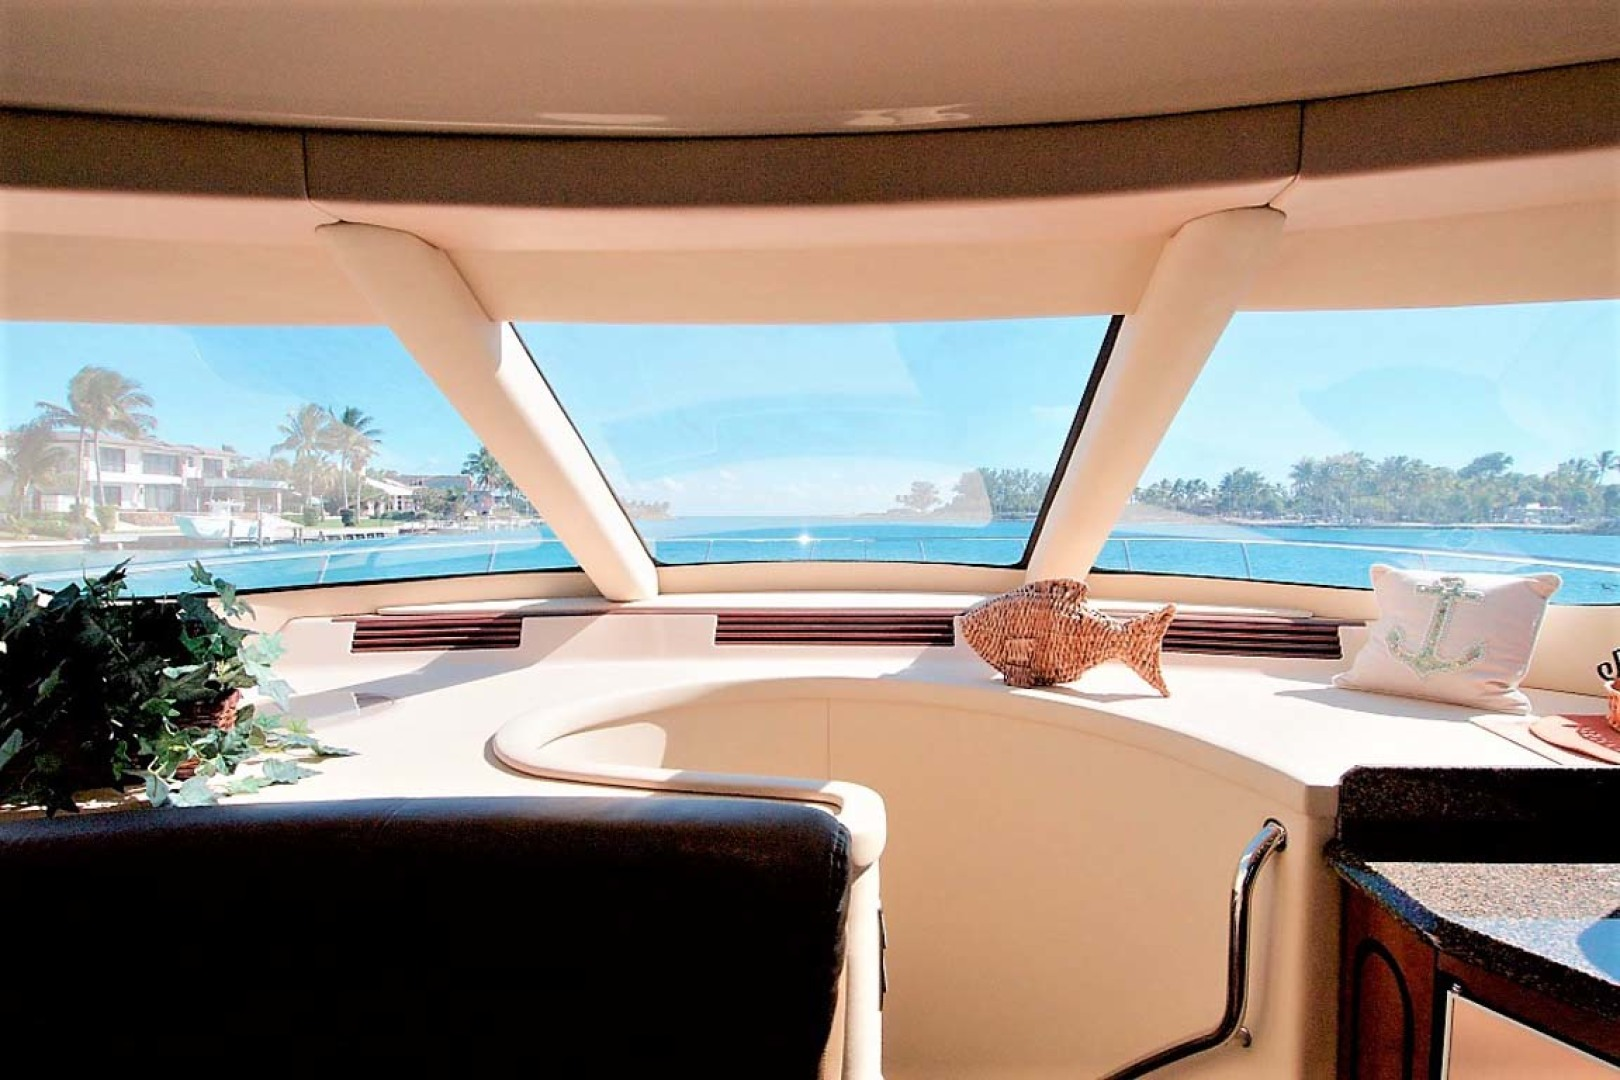 Sea Ray-58 Sedan Bridge 2006-Livin Large IV Jupiter-Florida-United States-Eyebrow Windows-1103701 | Thumbnail